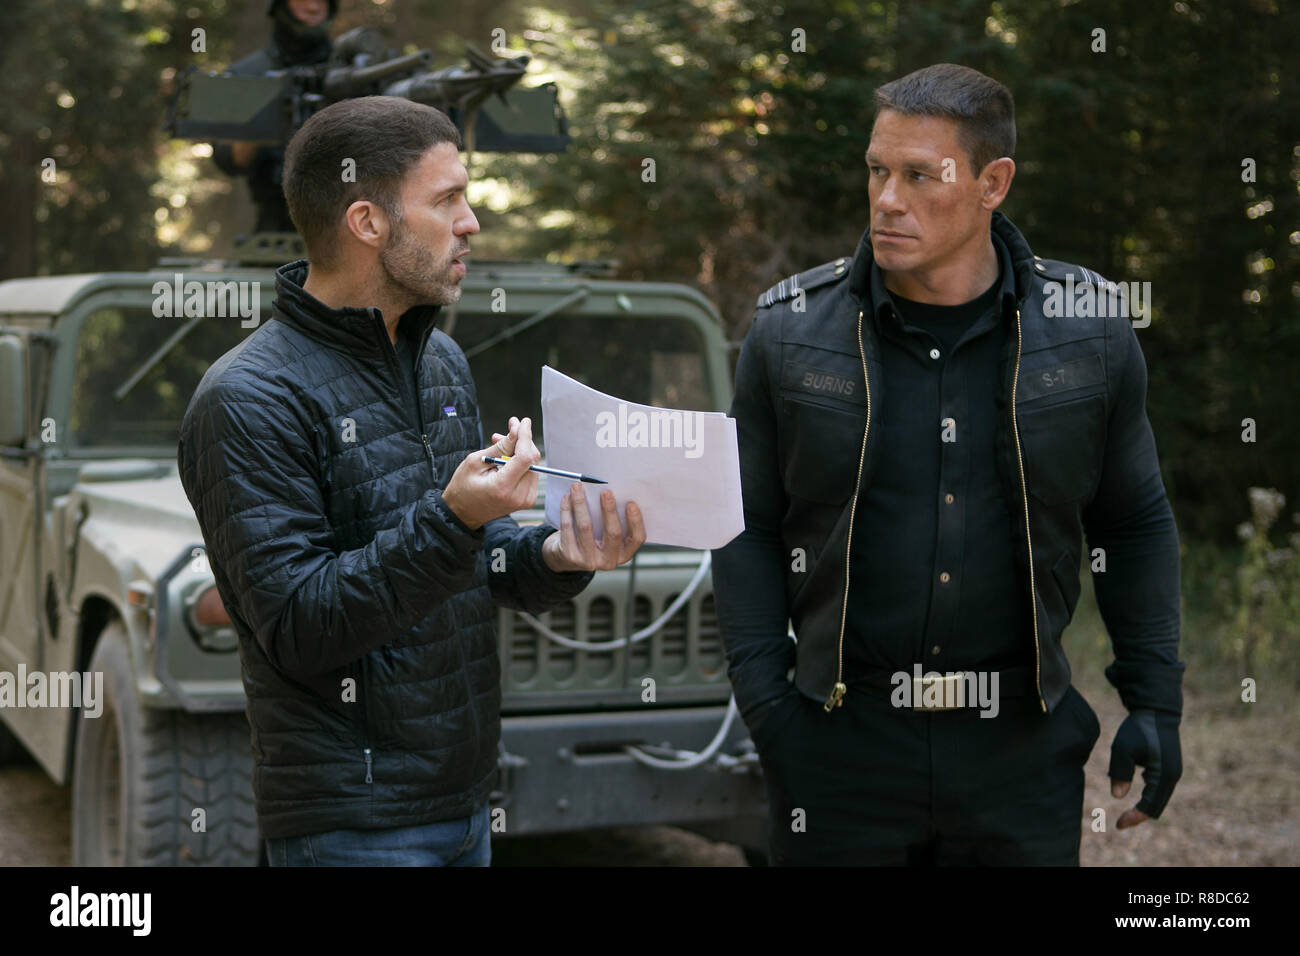 Left to right: Director Travis Knight and John Cena on the behind the scenes on the set of BUMBLEBEE, from Paramount Pictures.  Photo Credit: Paramount Pictures / The Hollywood Archive - Stock Image